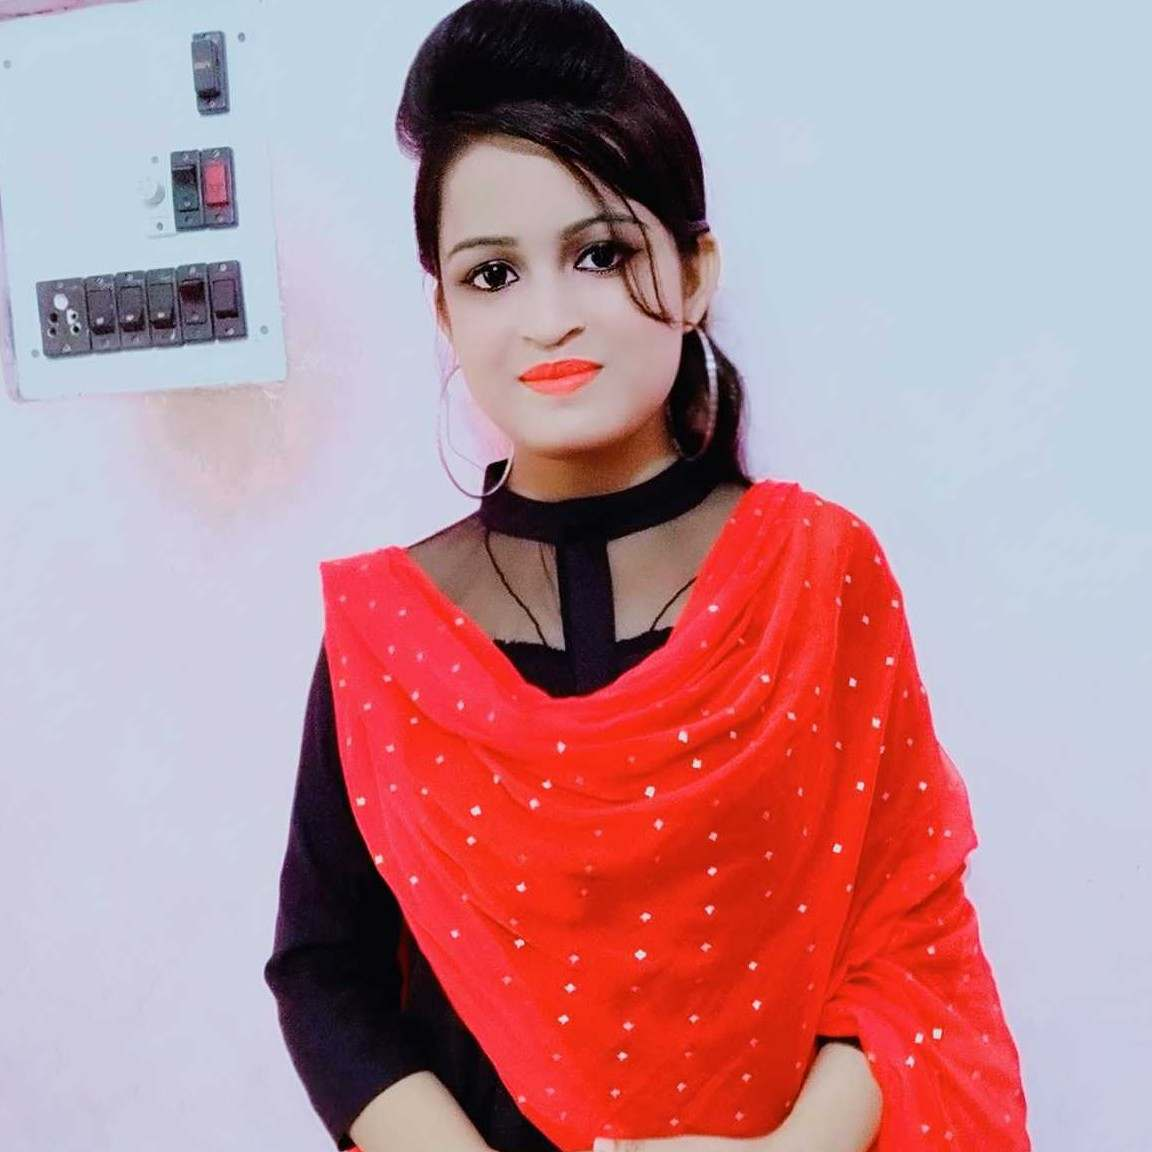 A girl look more beautiful in indian look